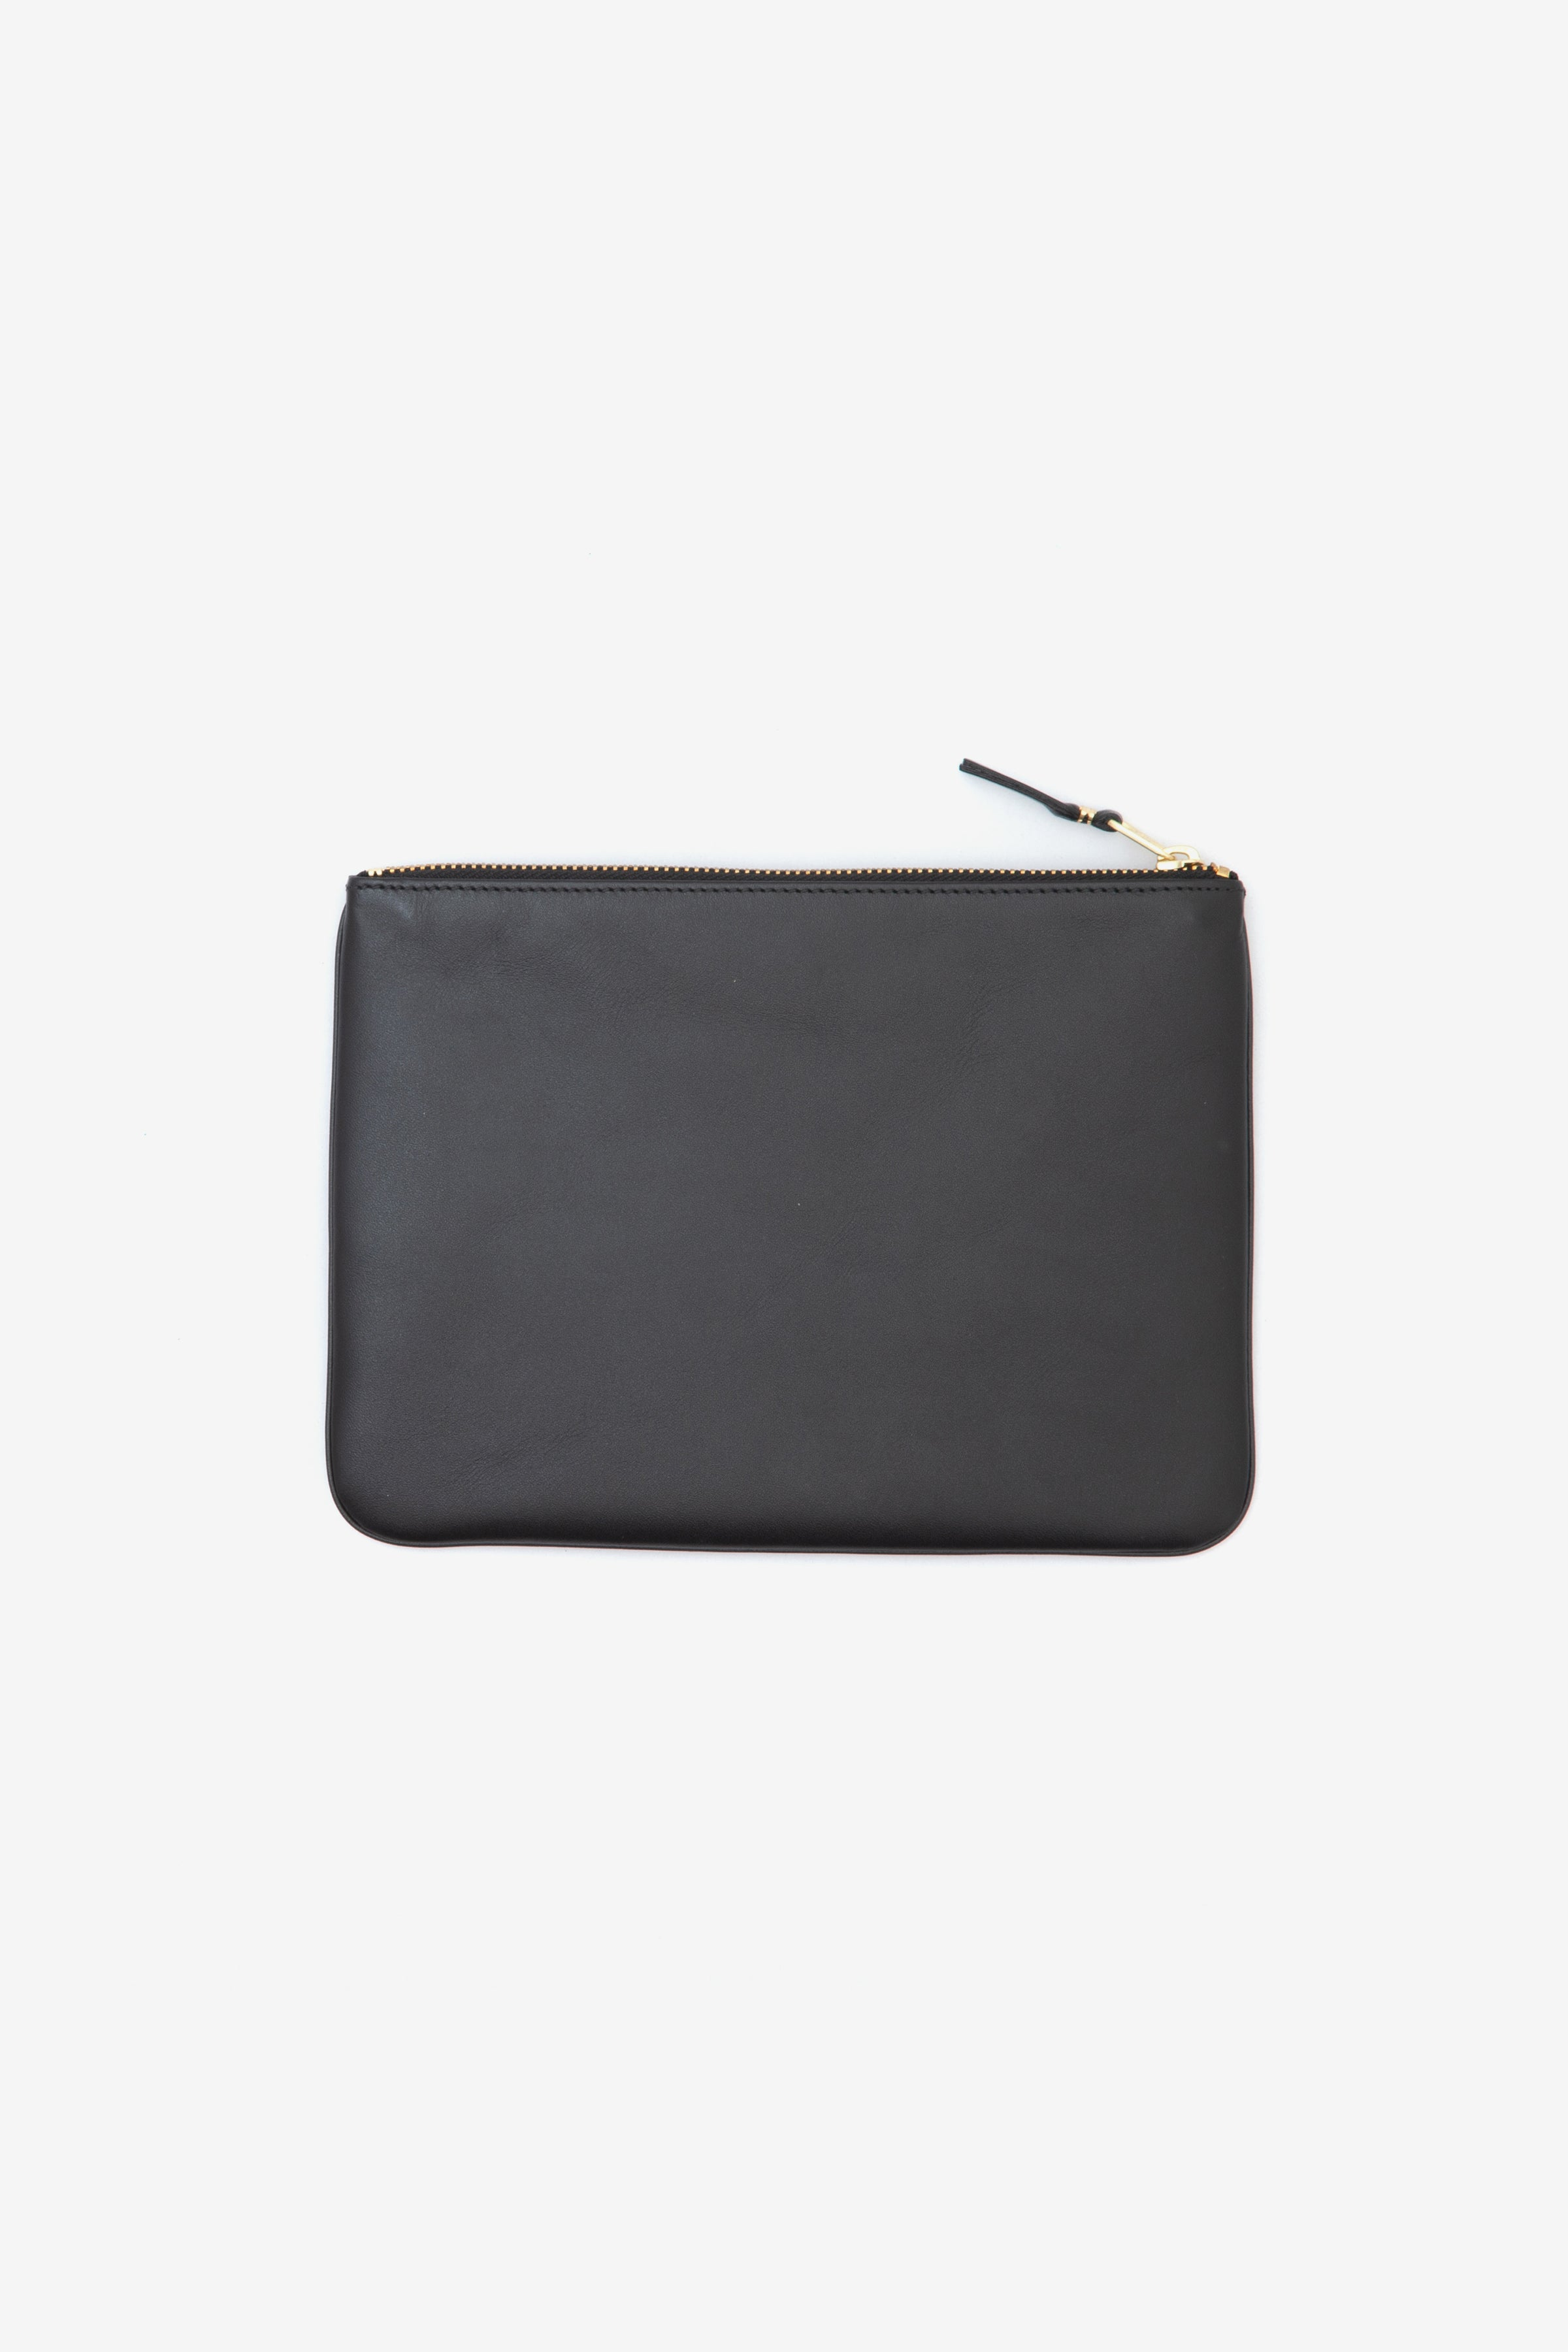 Comme Des Garcons Wallet Classic Leather Black 215mm x 160mm